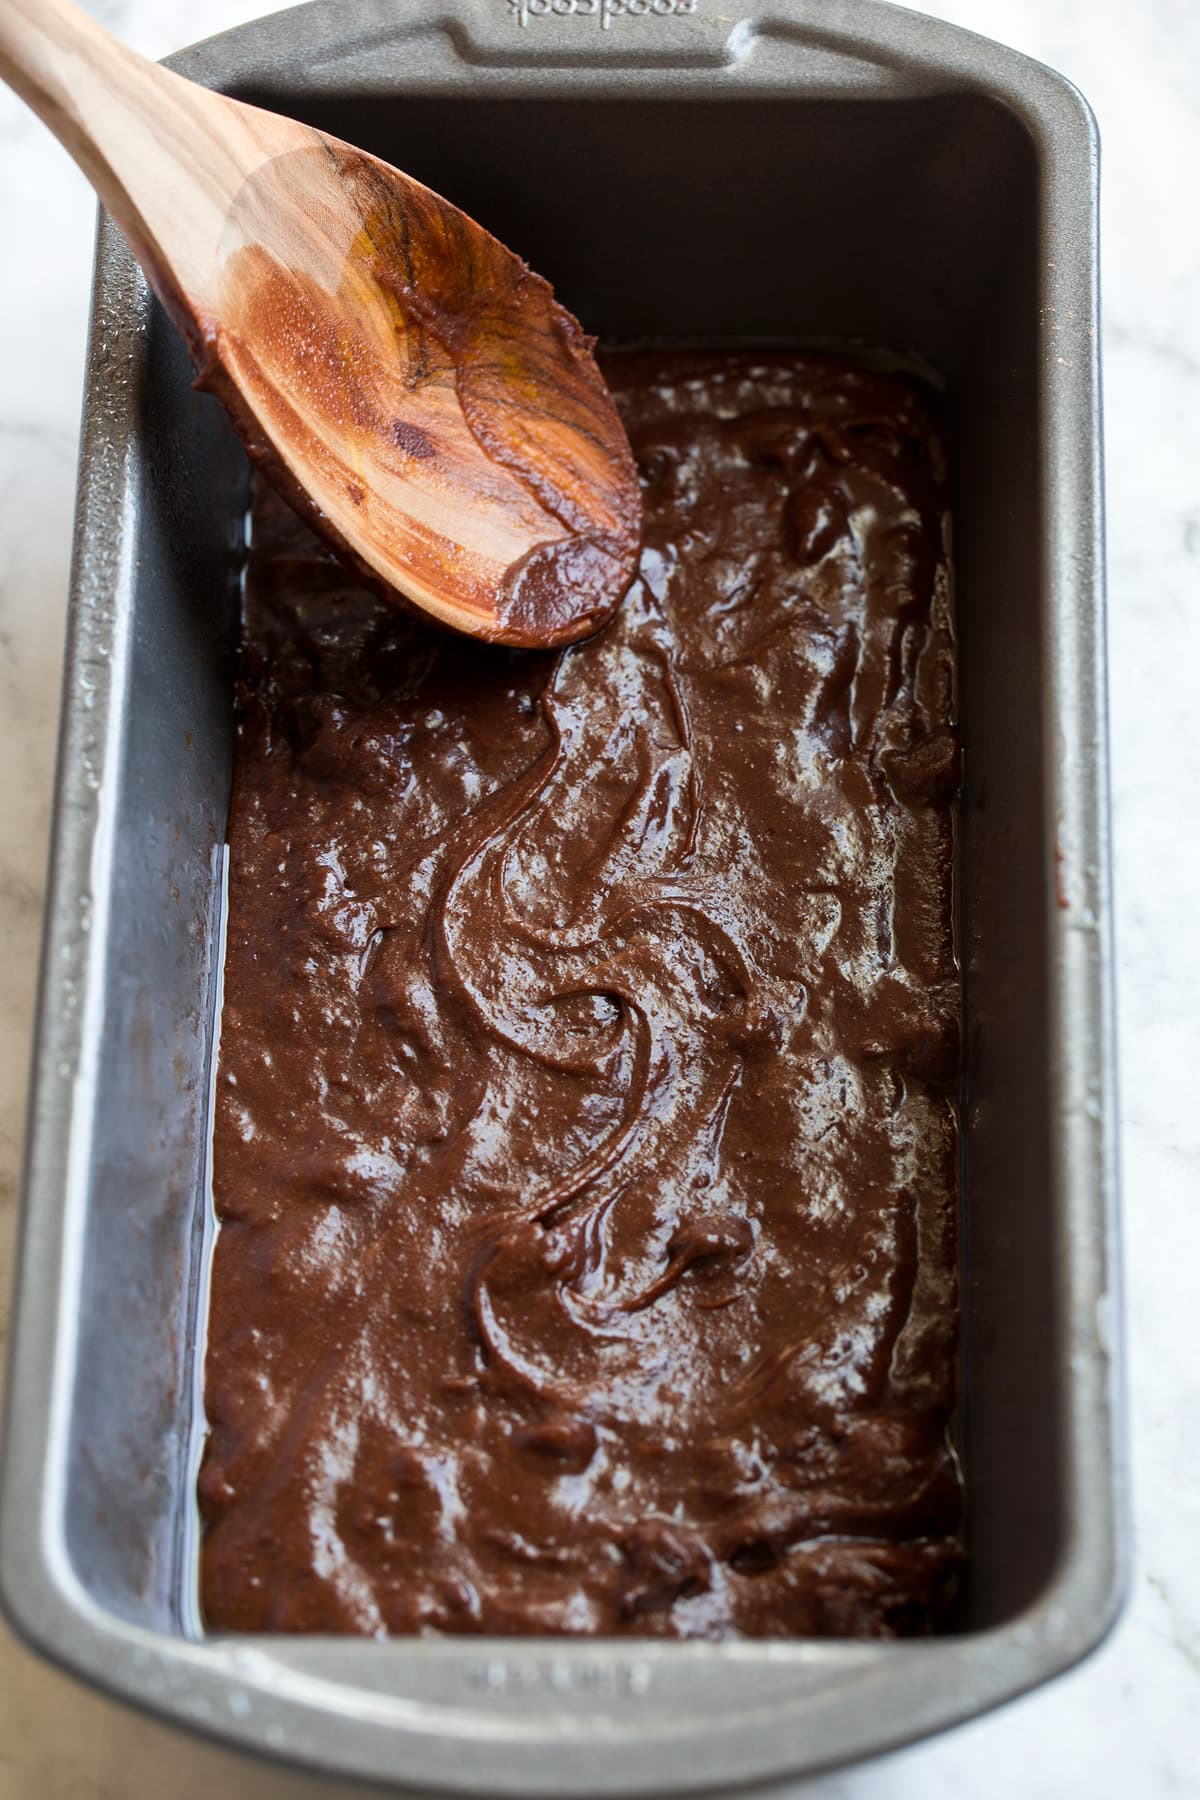 Brownie batter being spread into a bread pan.